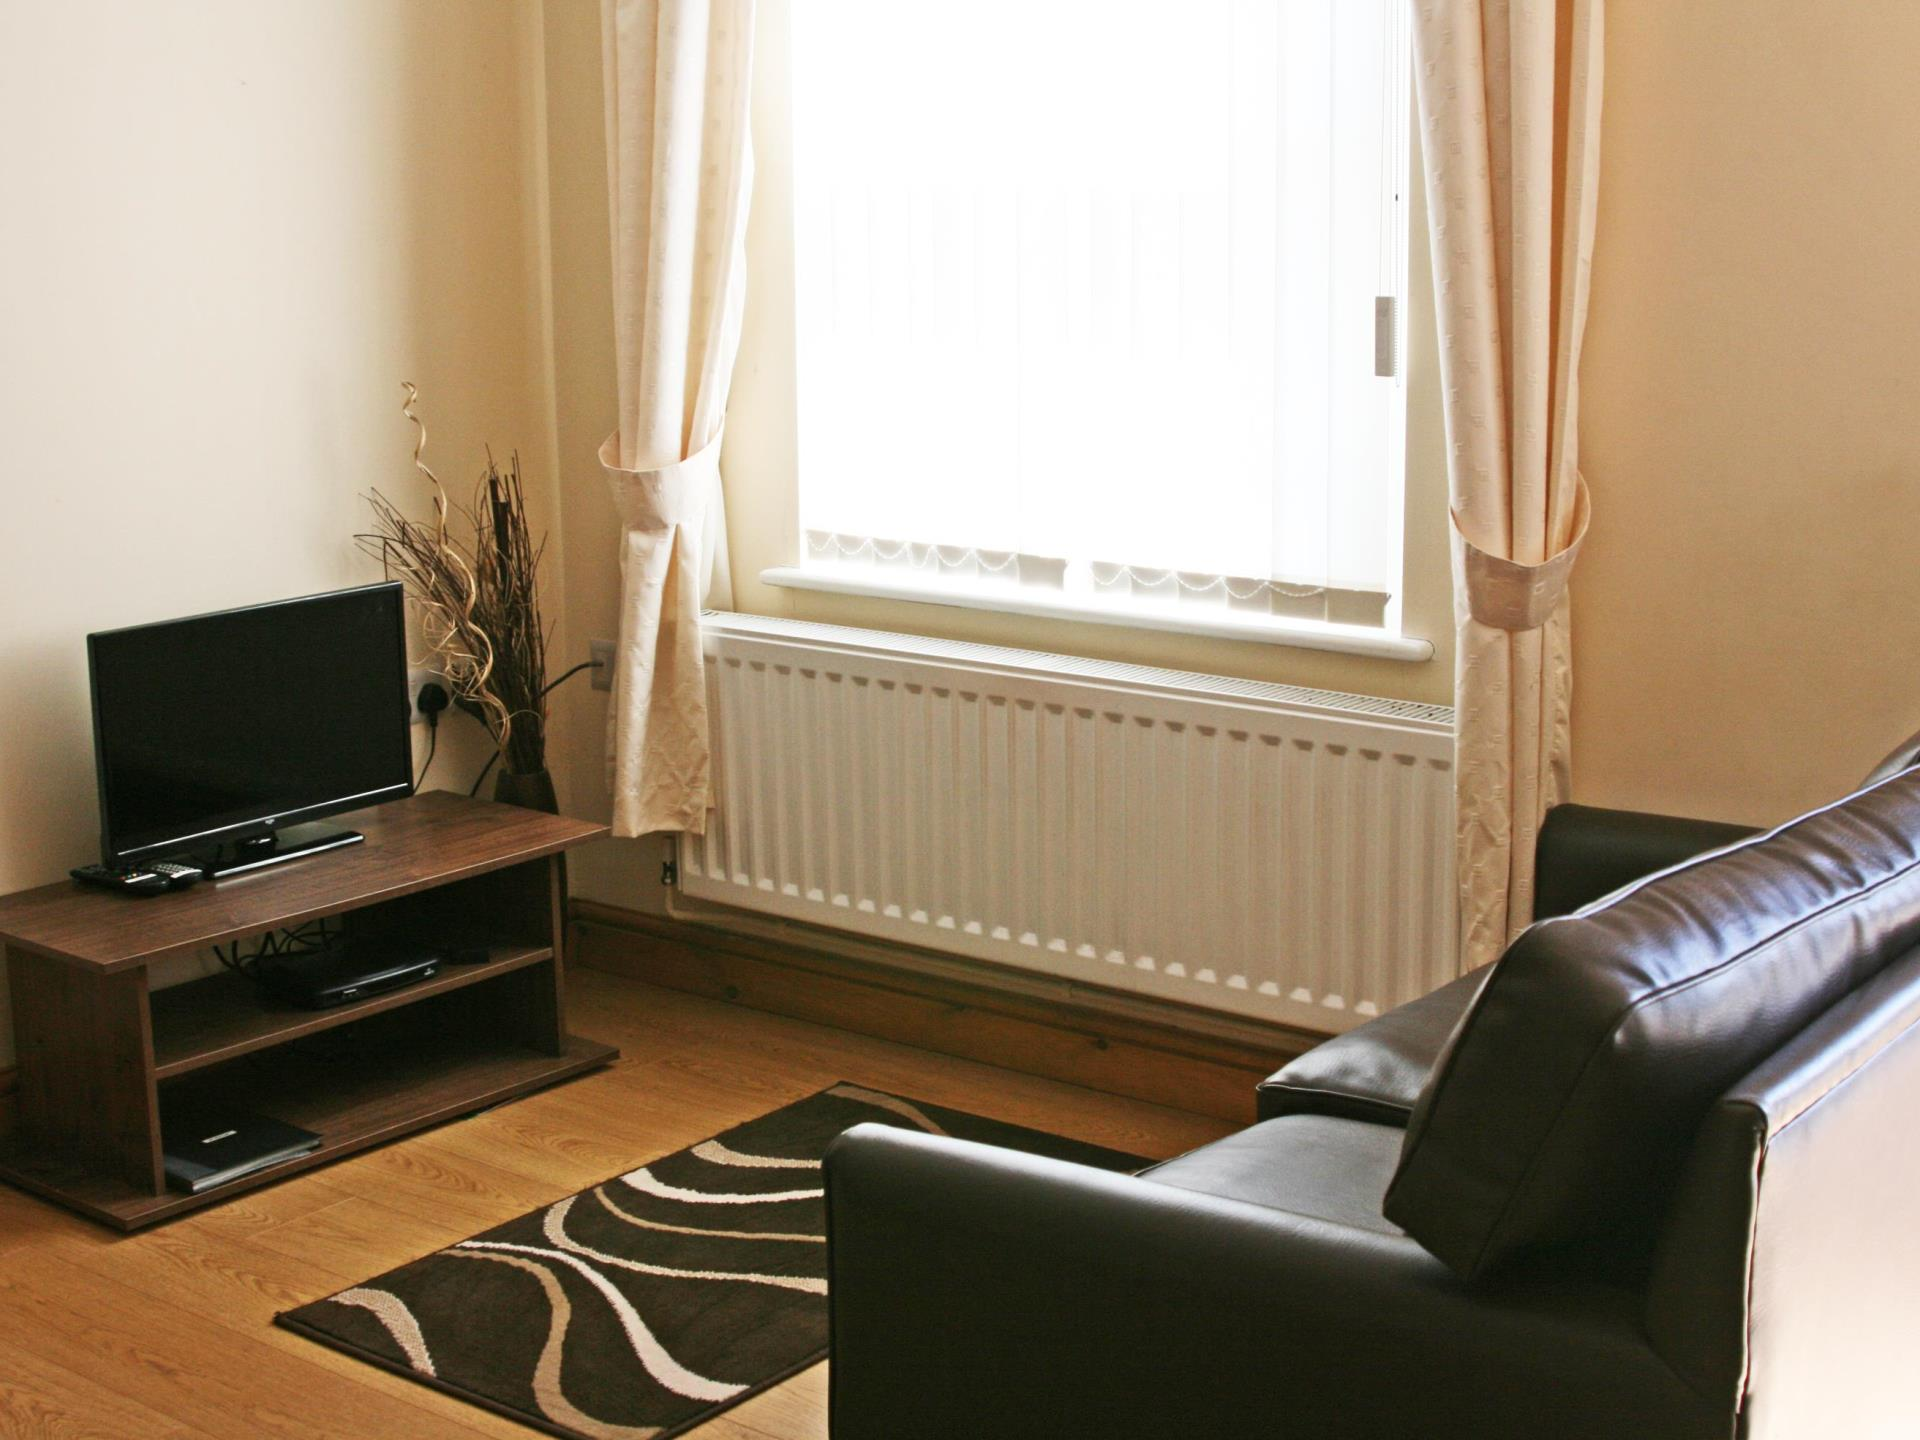 Sofa and TV area in Gremlin Lodge cottages